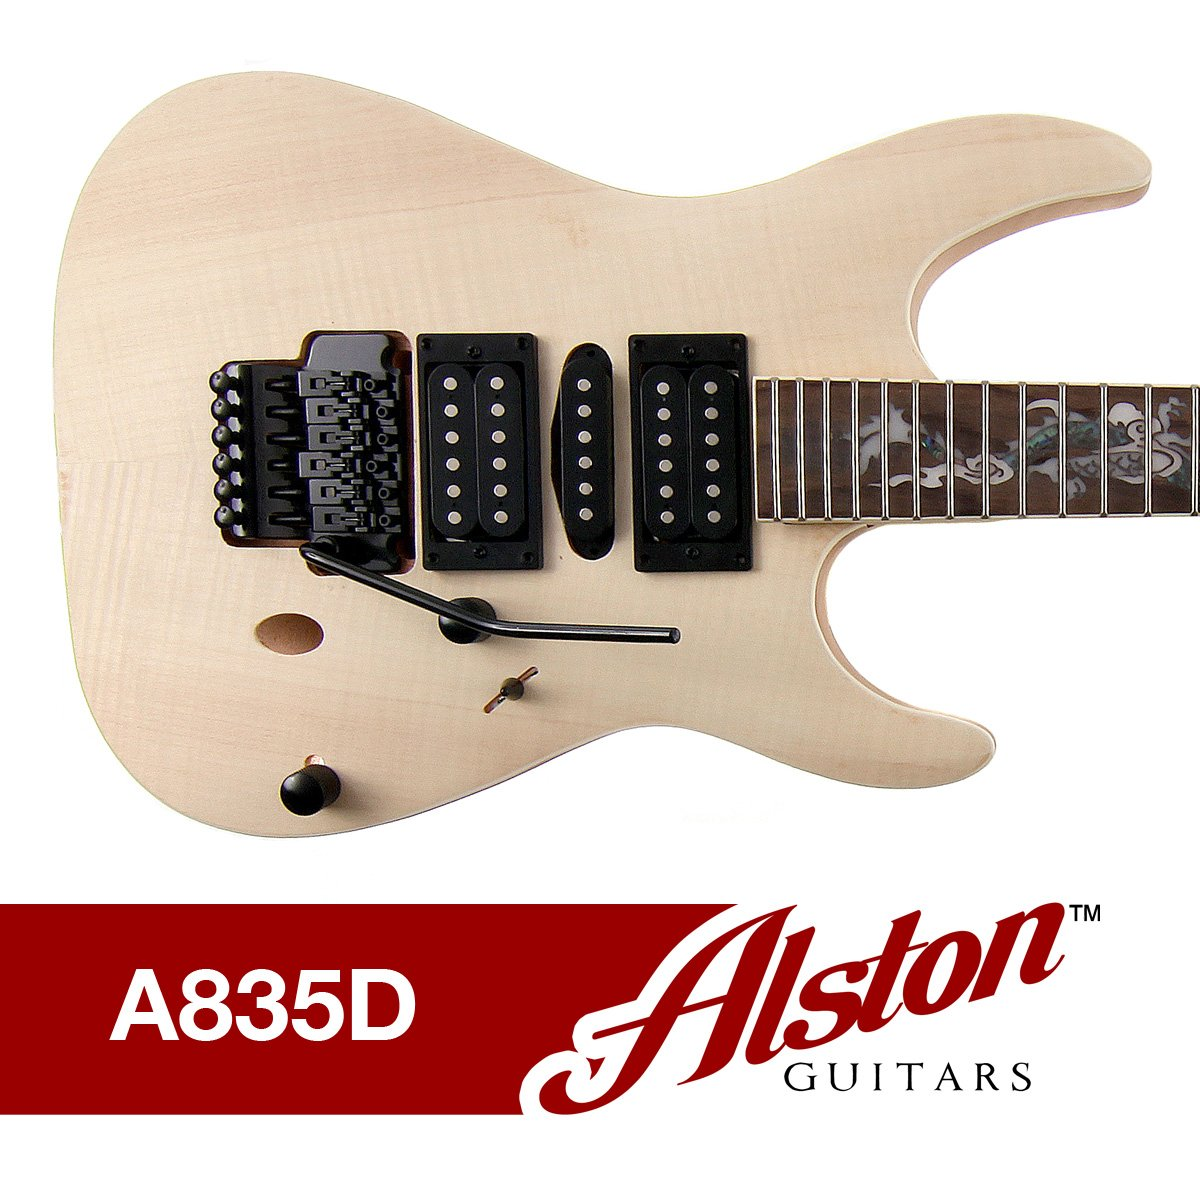 Alston Guitars Diy Electric Guitar Kit Bolt On Encore Wiring Diagram Solid Mahogany Body Neck Flamed Maple Veneer Musical Instruments